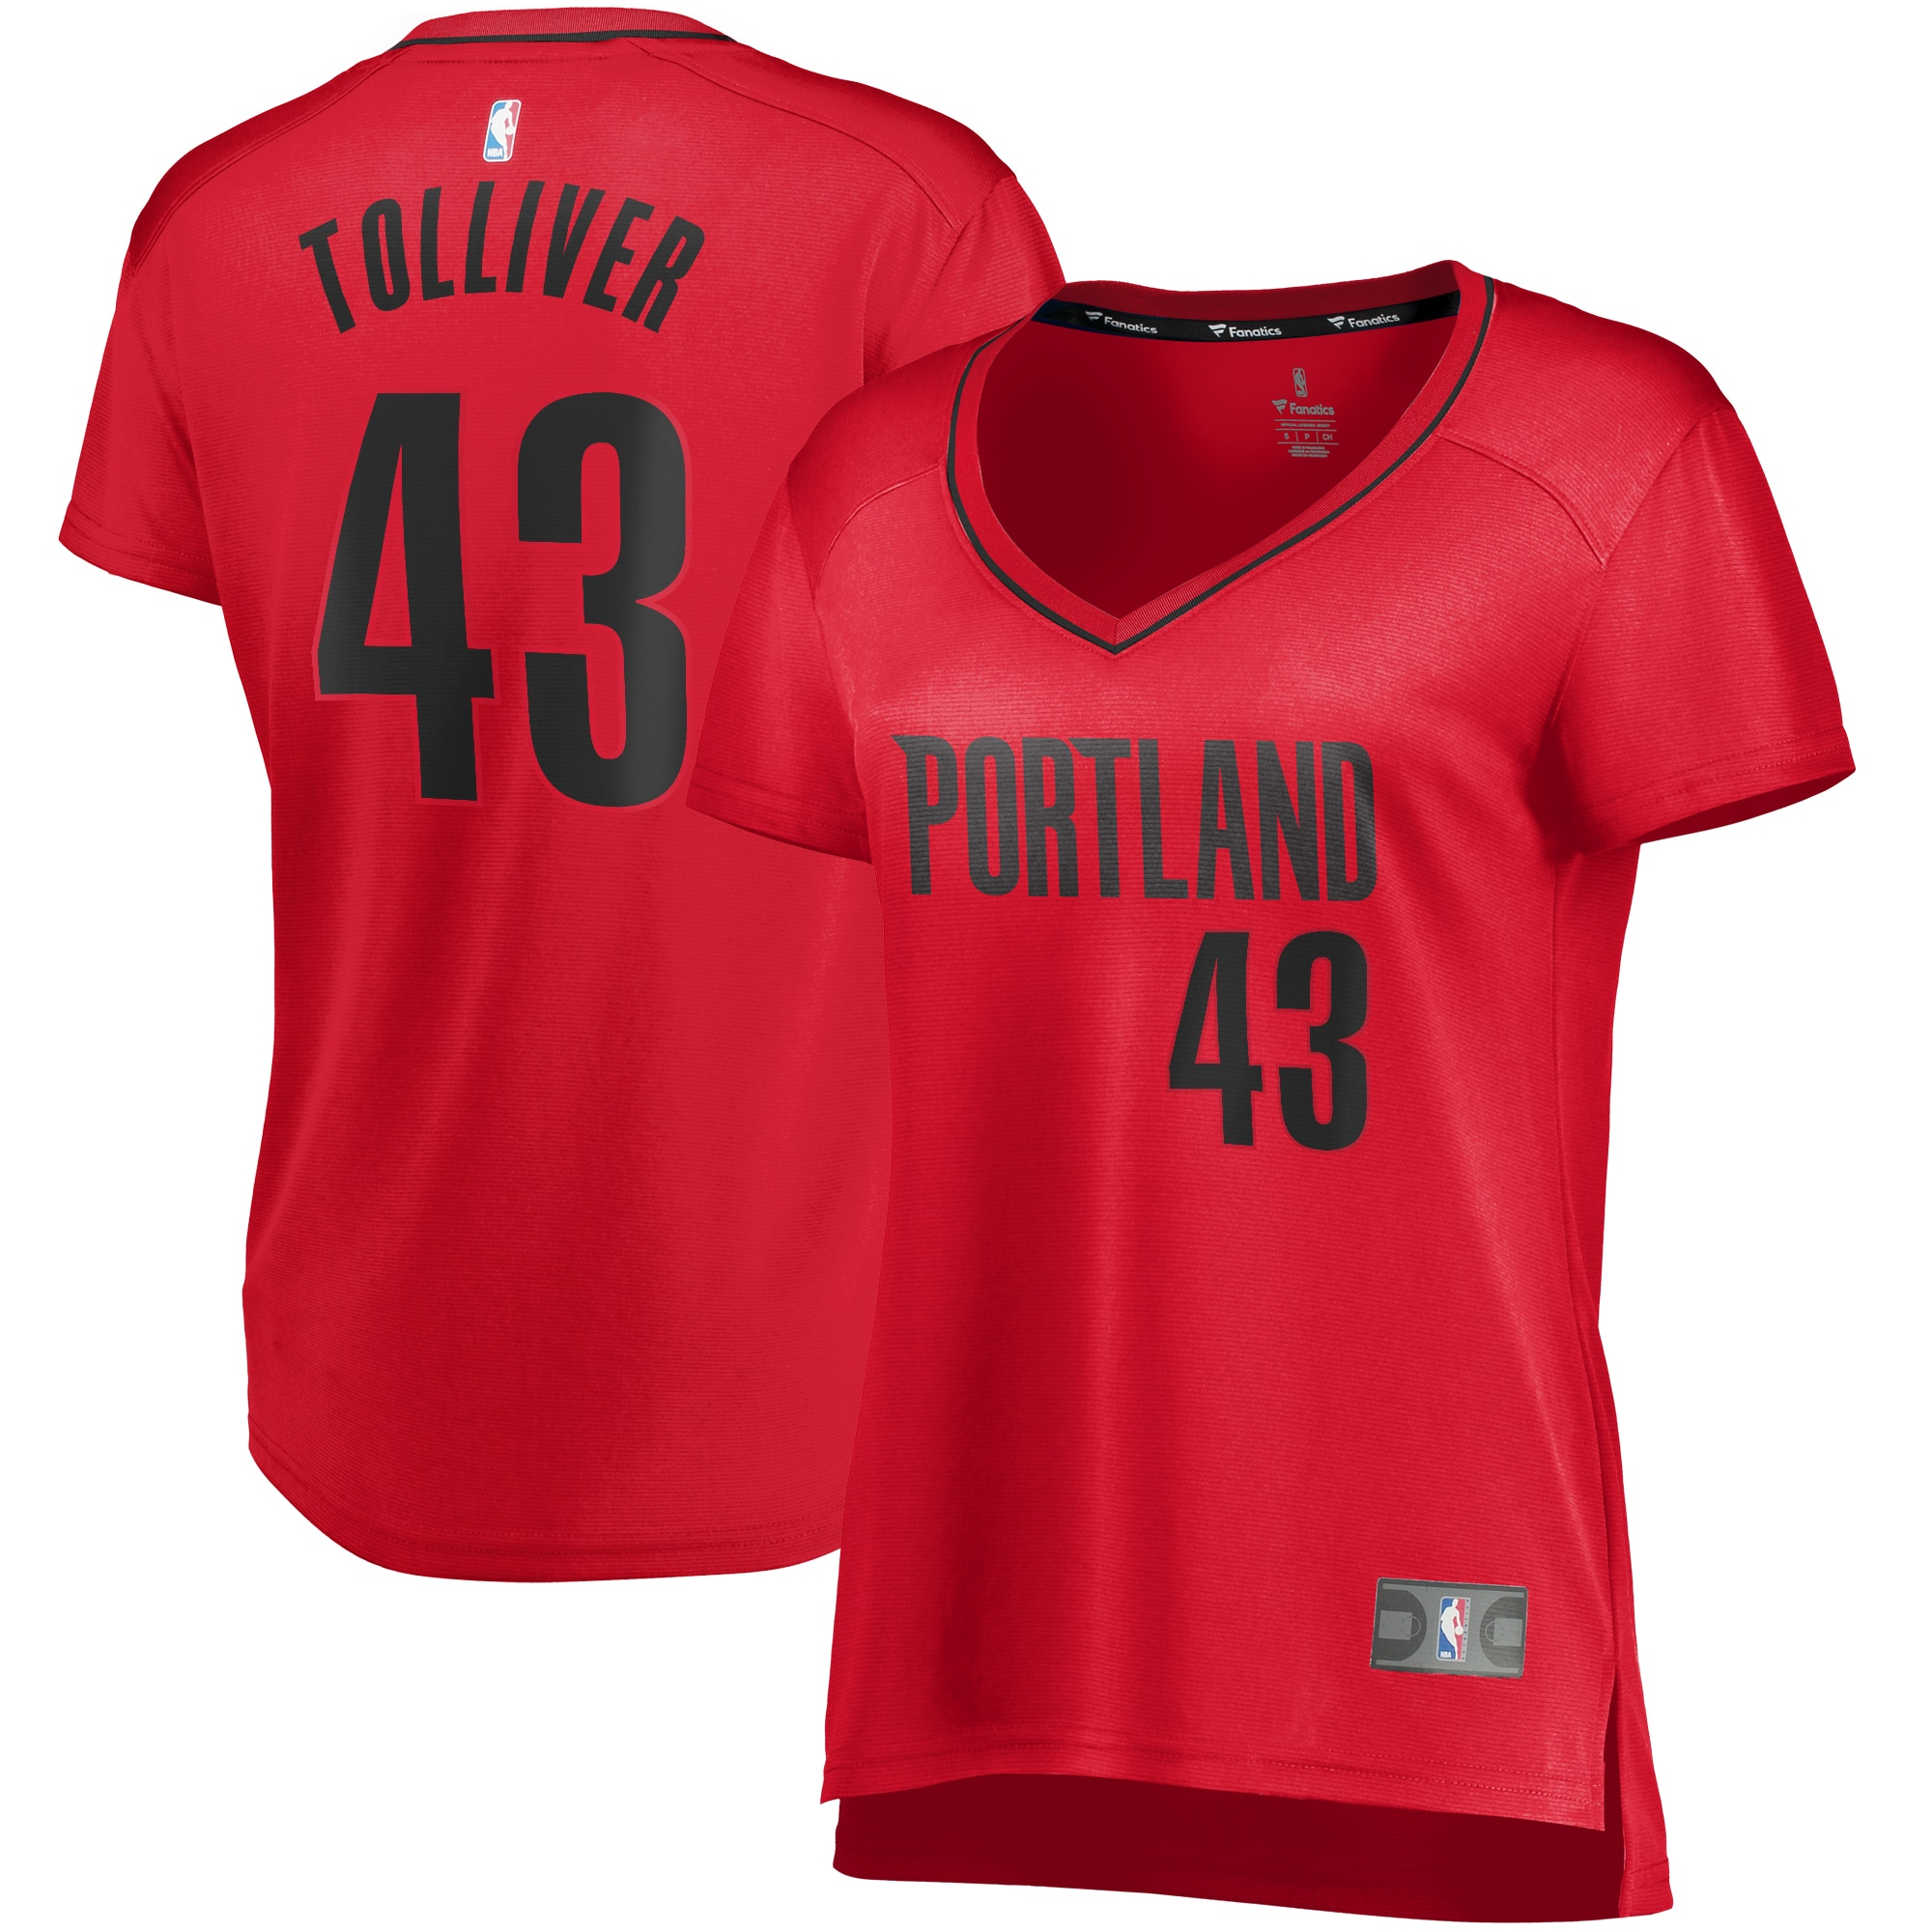 Anthony Tolliver Portland Trail Blazers Fanatics Branded Women's Fast Break Replica Jersey Red - Statement Edition